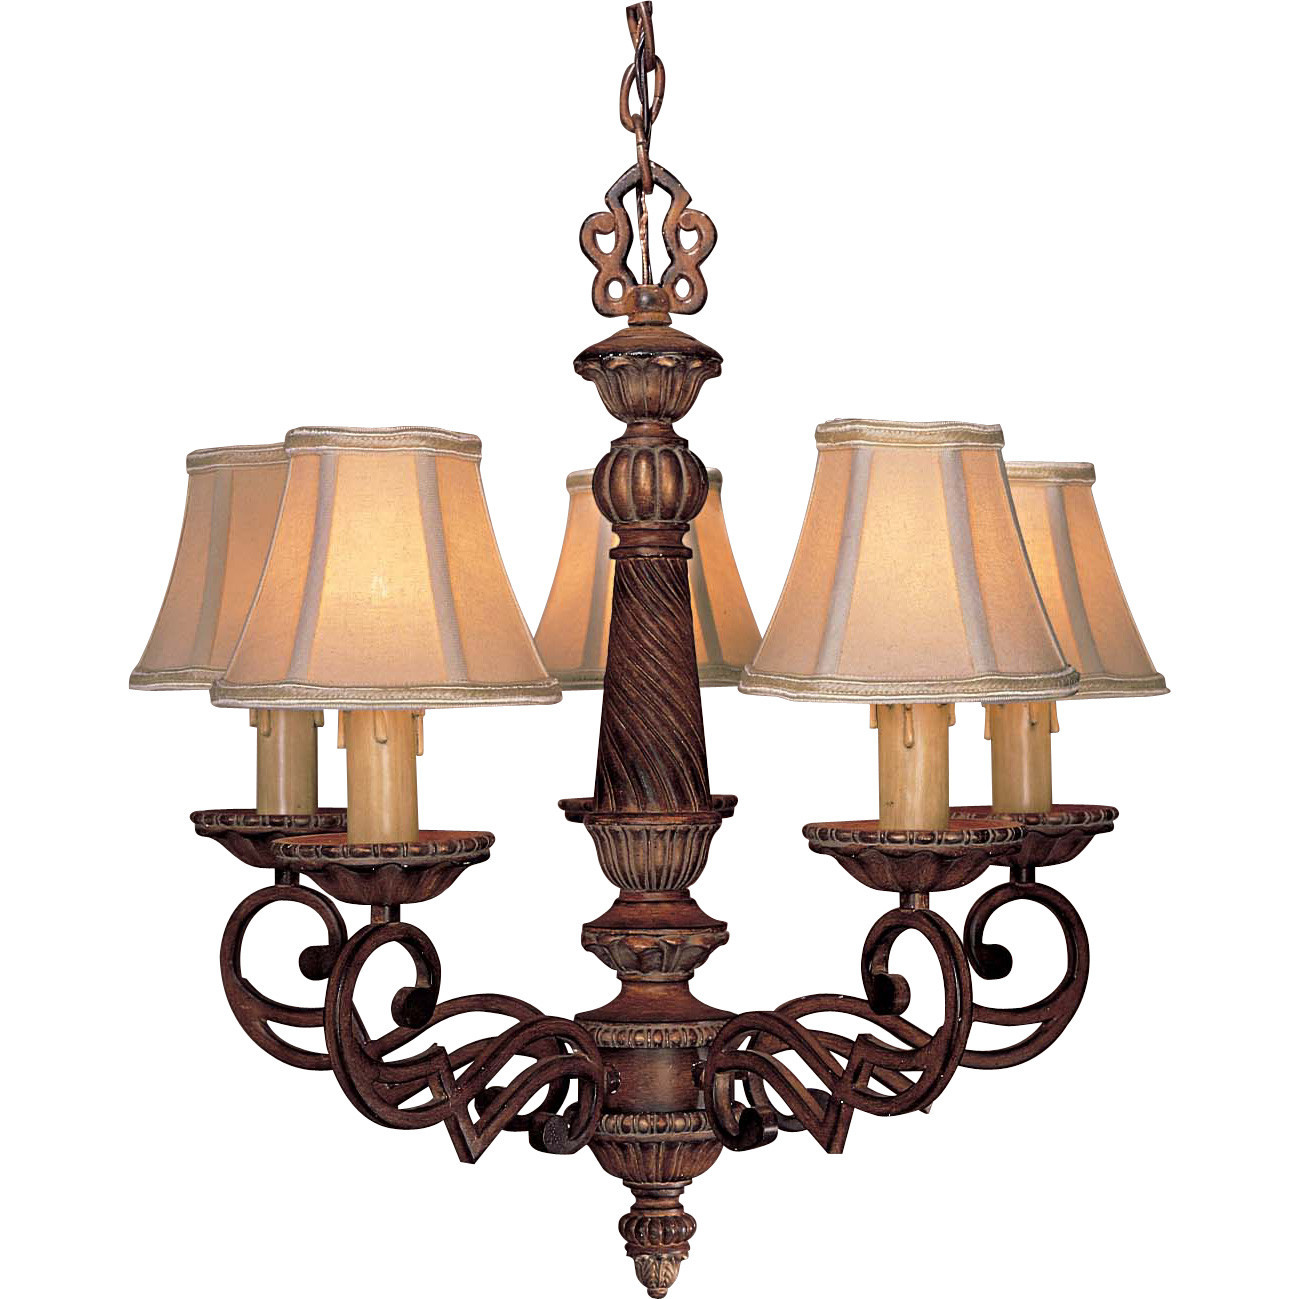 Best ideas about Minka Lavery Lighting . Save or Pin Minka Lavery Belcaro 5 Light Chandelier & Reviews Now.